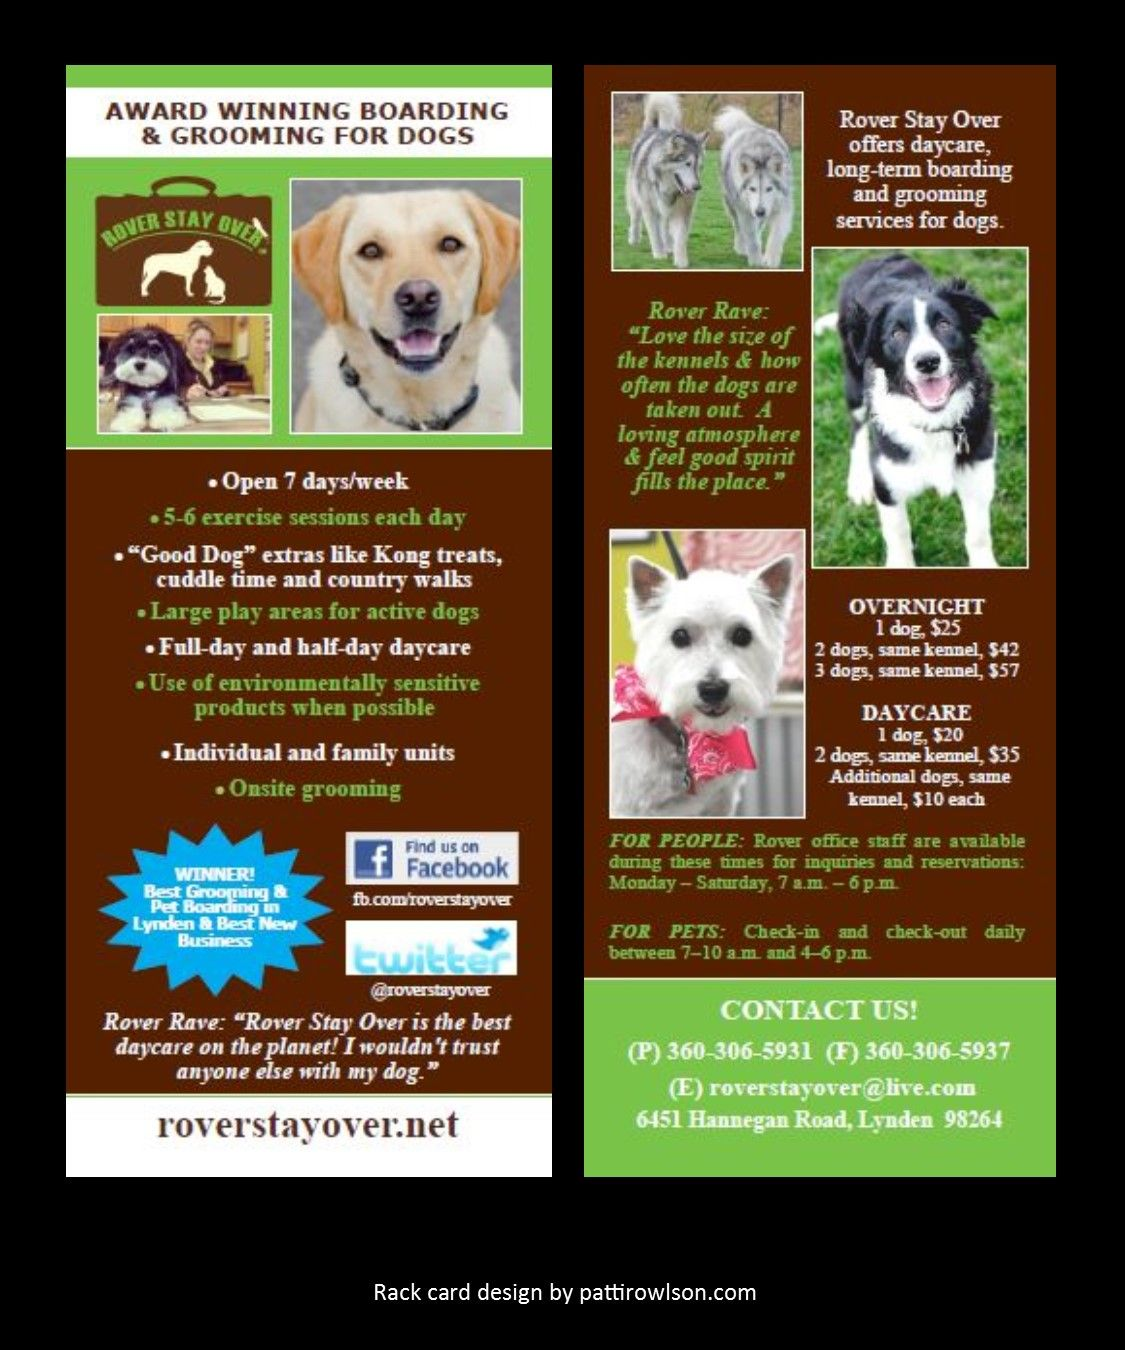 Rack Cards For Rover Stay Over Boarding Grooming And Dog Training